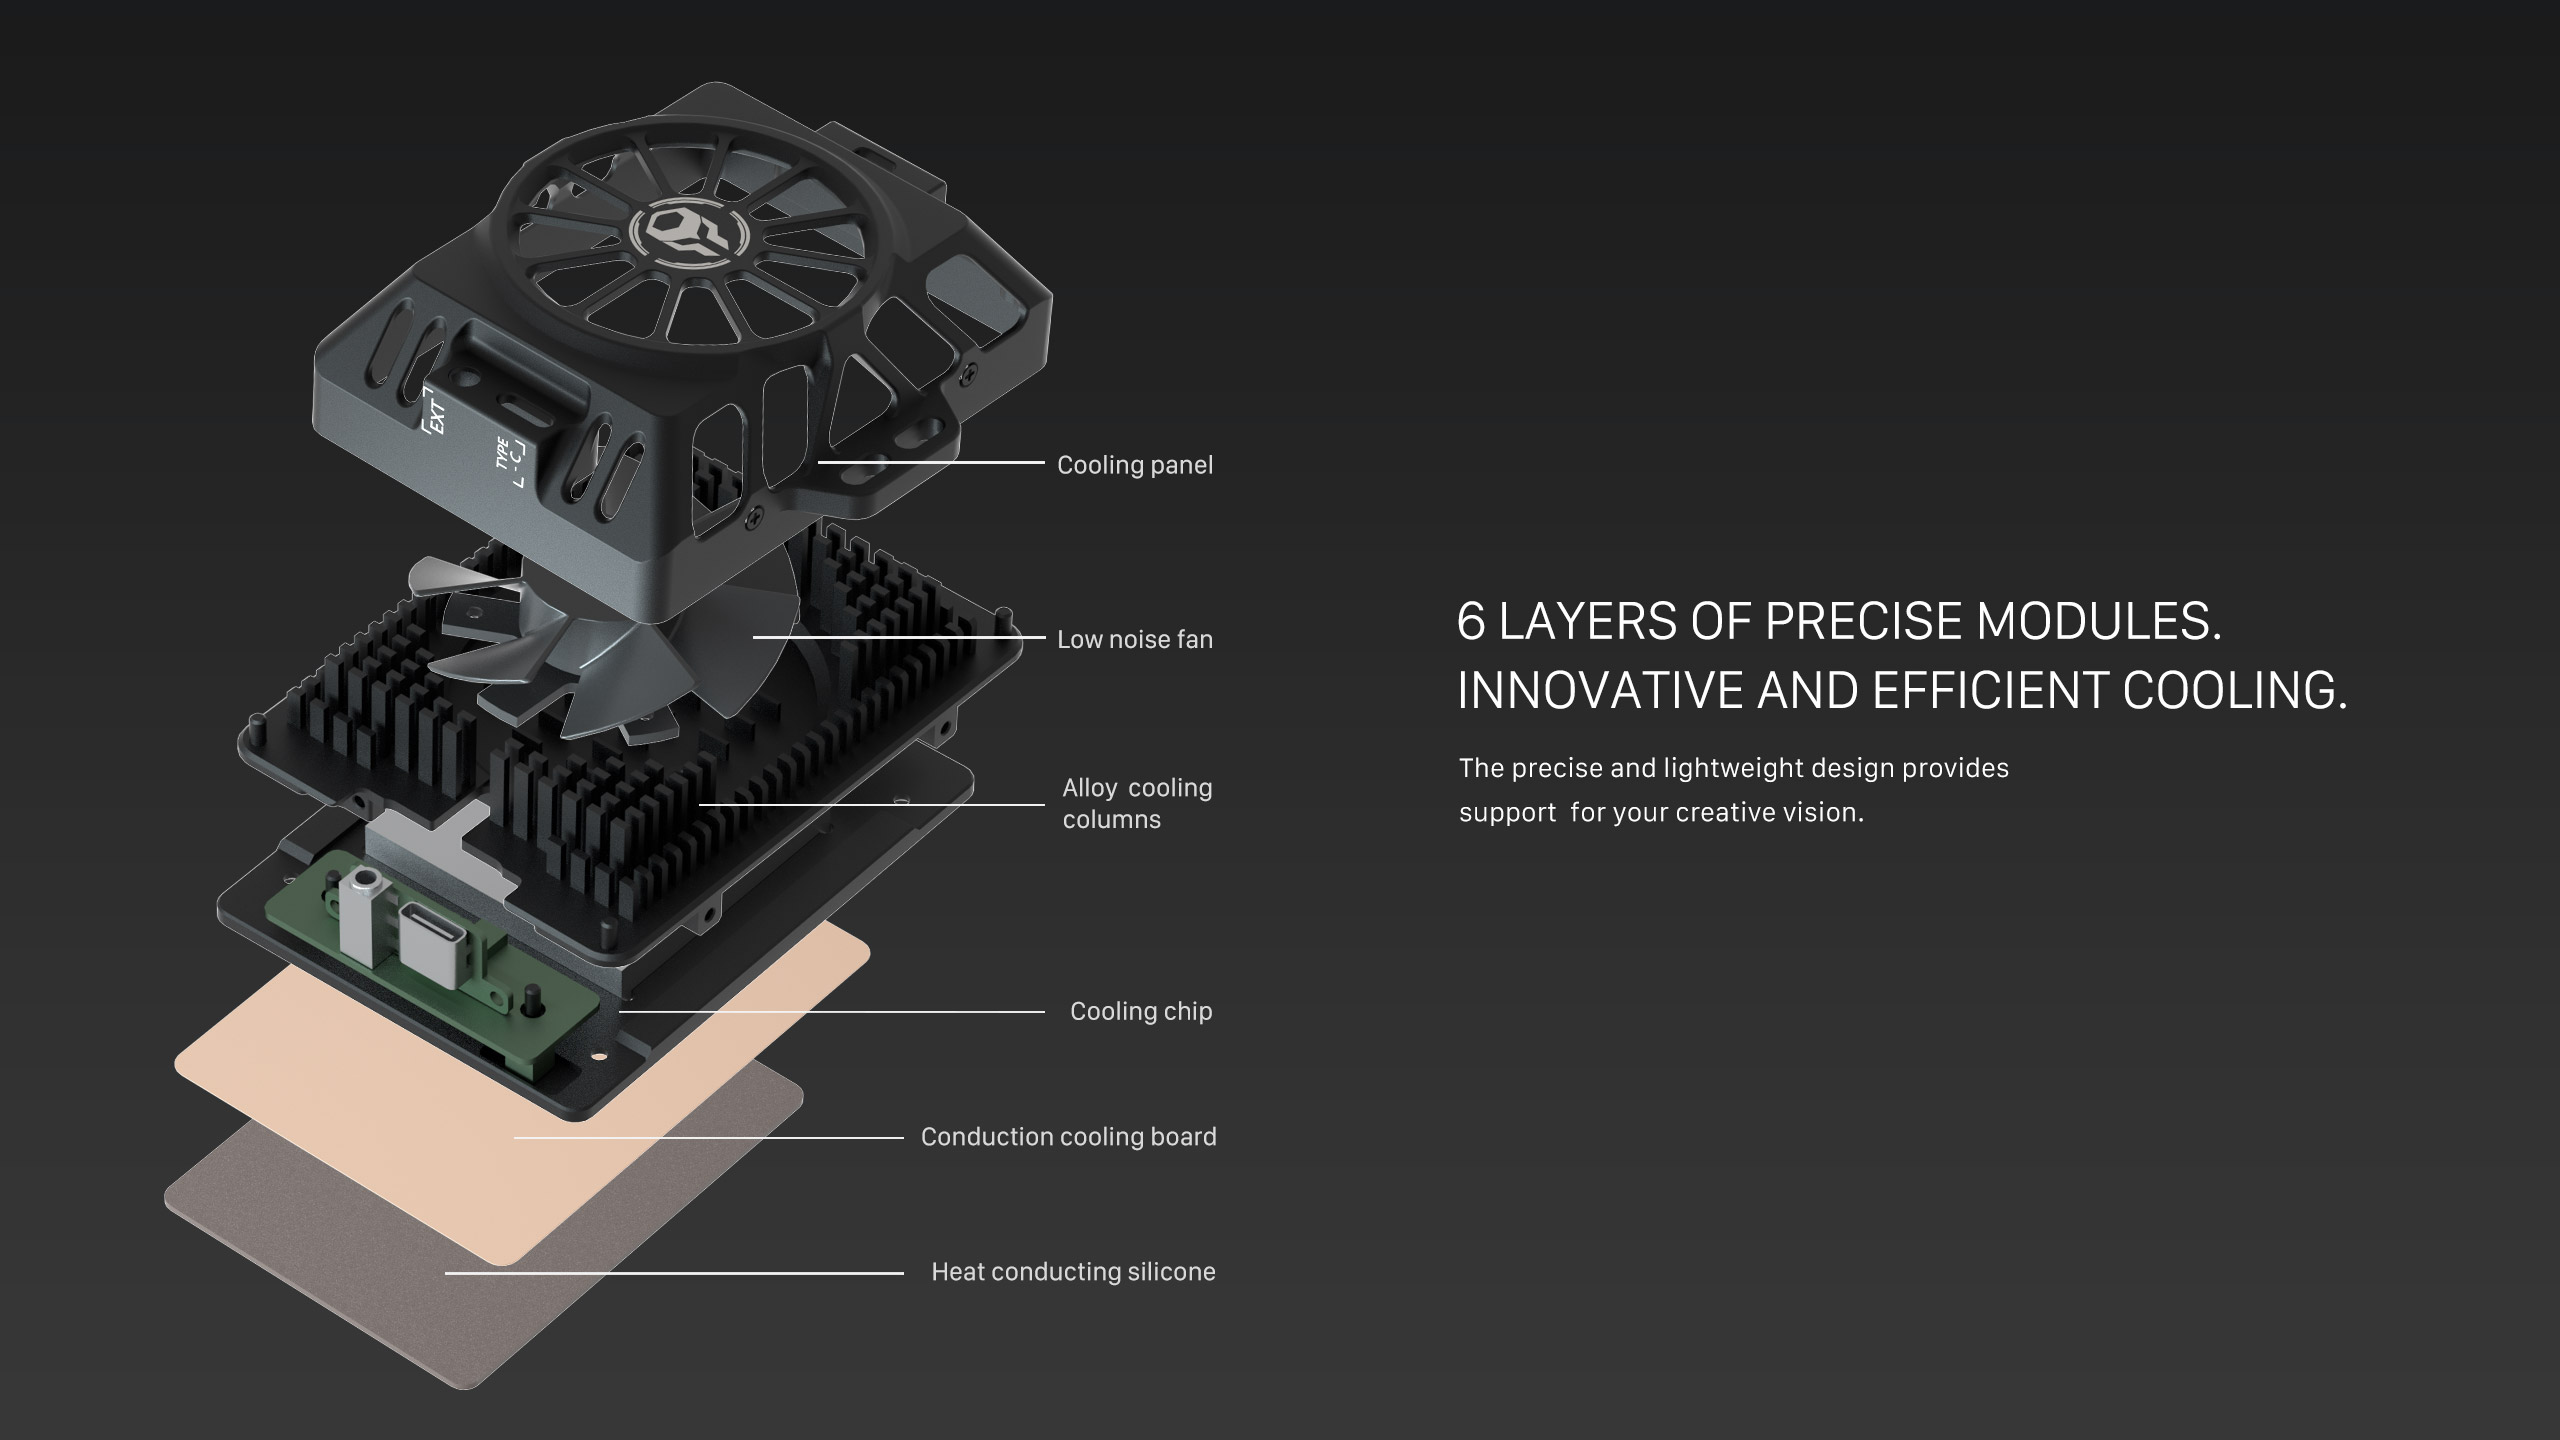 6 layers of precise modules